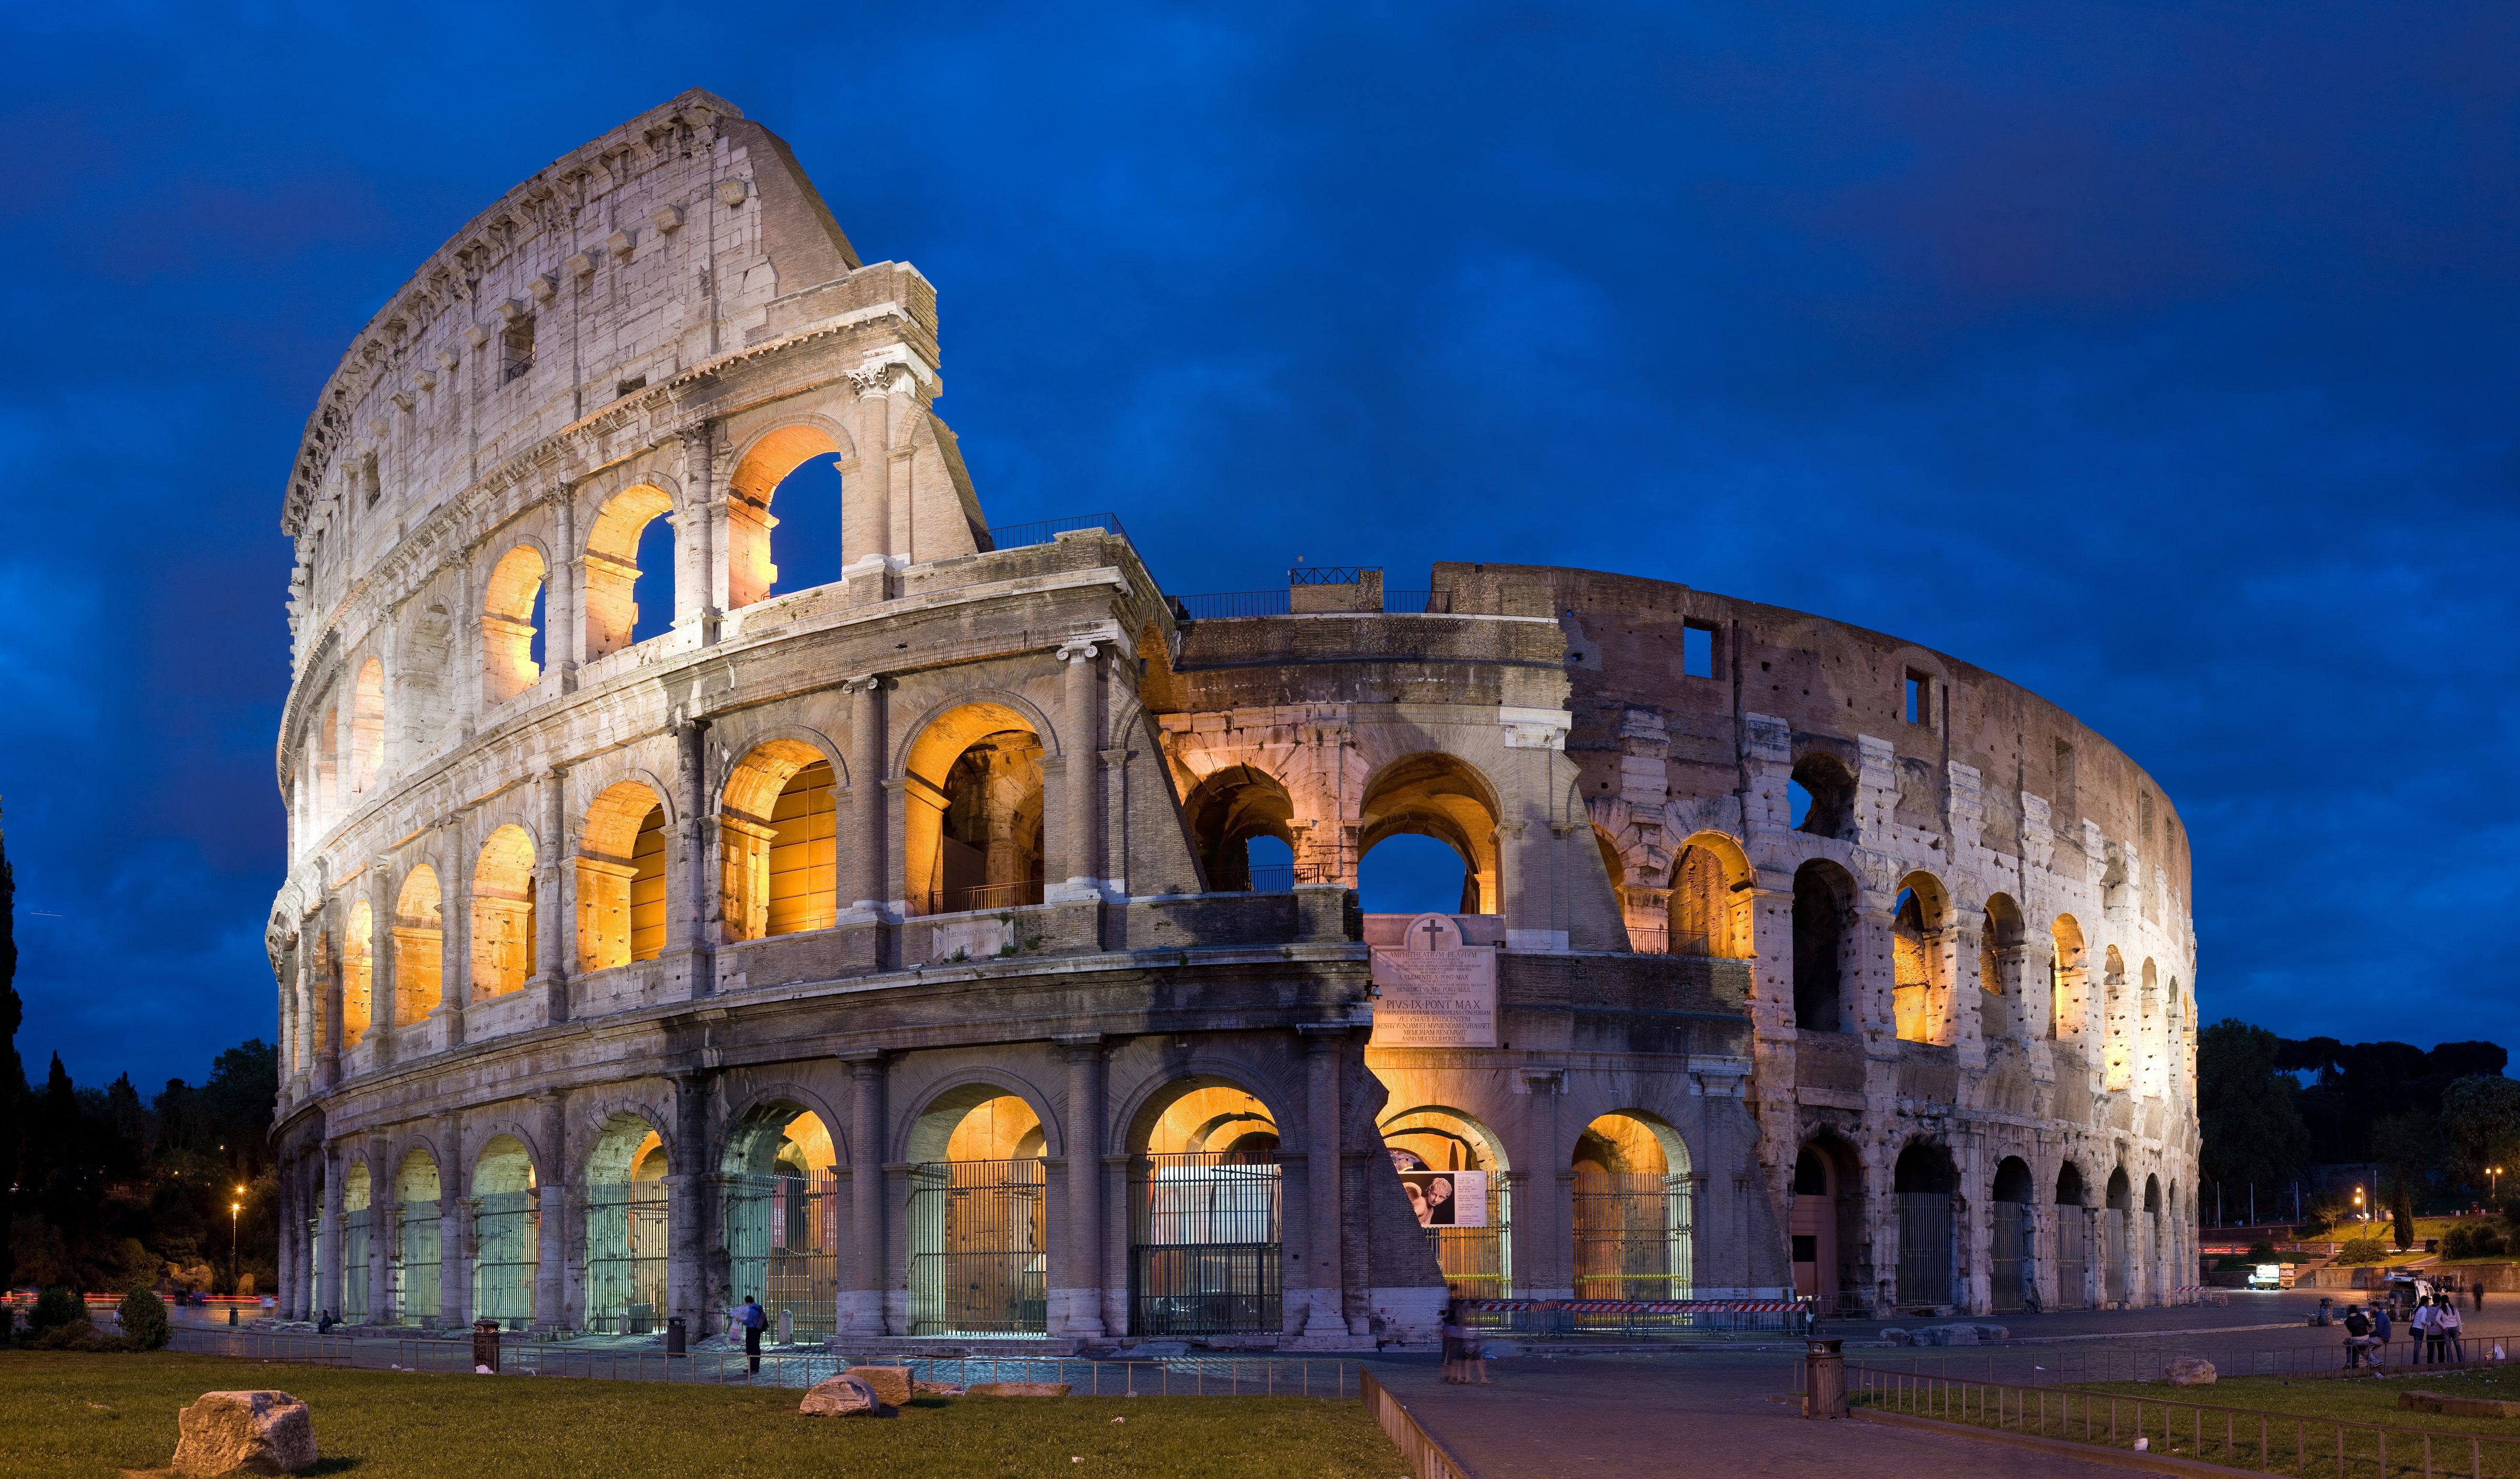 Colosseum in rome joe walsh tours school college tours europe colosseum in rome colosseum rome italye flavian amphitheater is an iconic symbol for rome the eternal city as well as for the civilization biocorpaavc